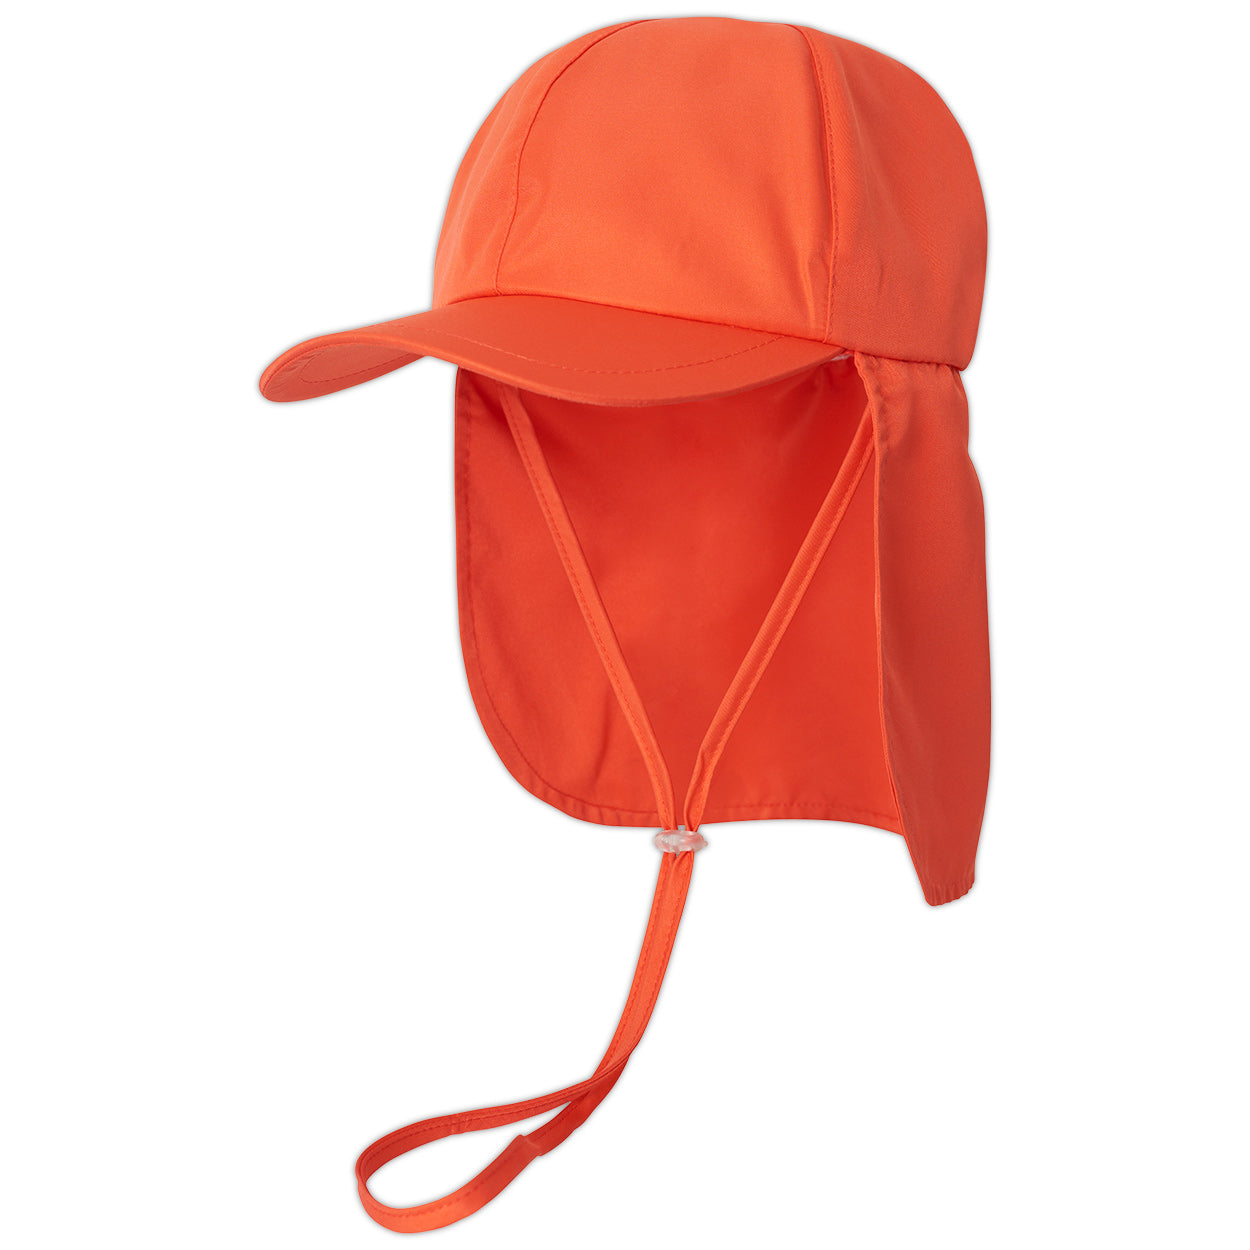 Kids Orange Legionnaire Sun Hat Upf 50 Size S Xl Boys Girls Unisex Sunpoplife Back Left Sunpoplife